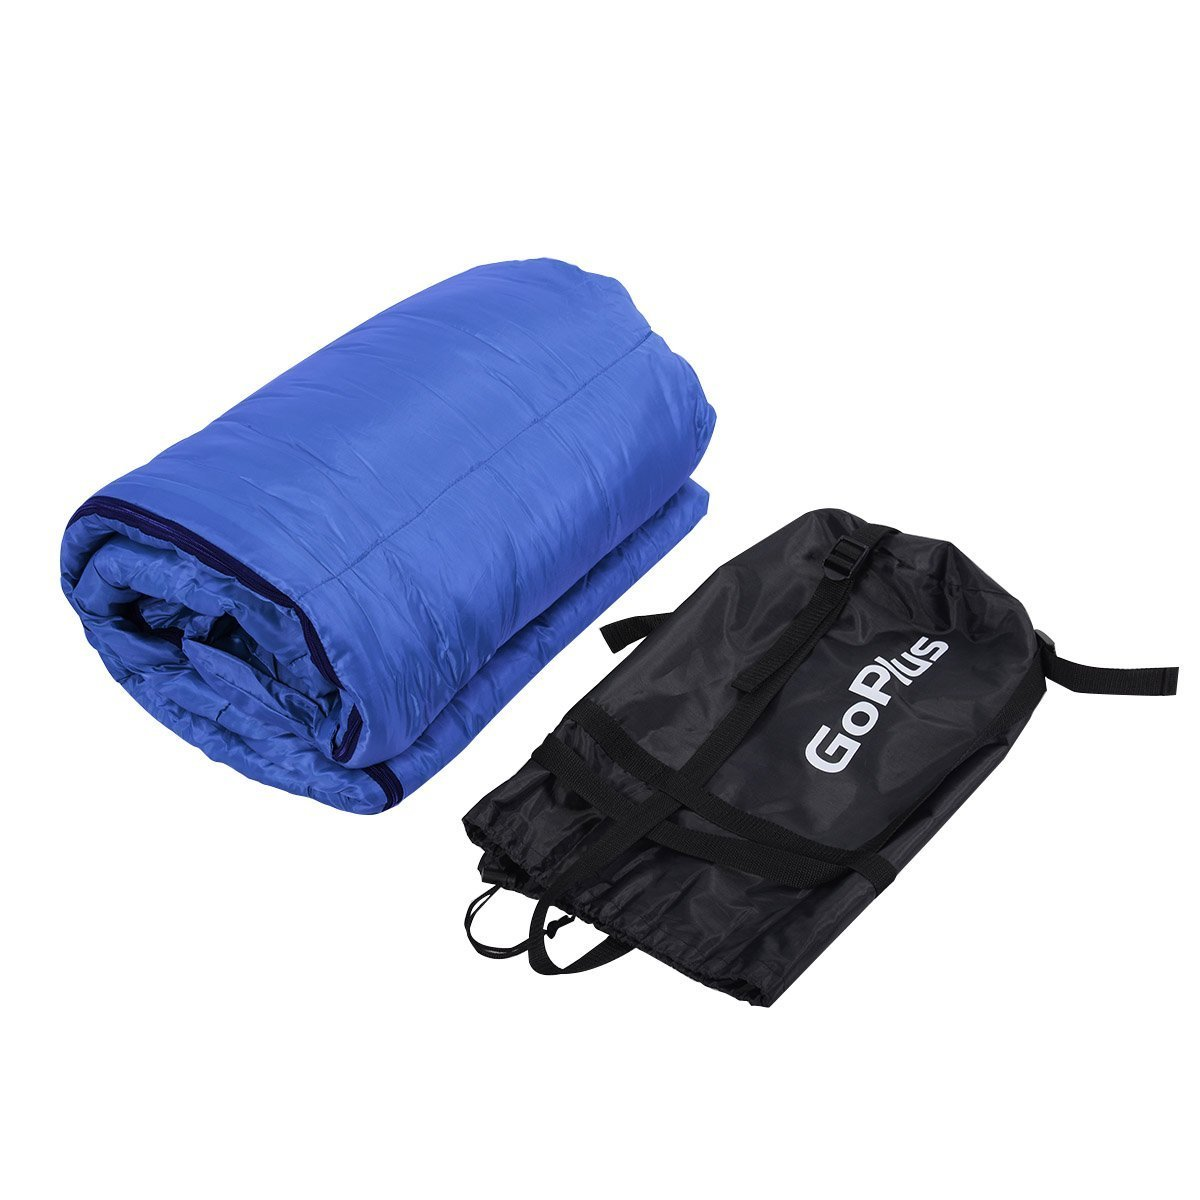 Goplus New Mummy Waterproof Outdoor Sleeping Bag Camping Travel Hiking W Carrying Bag